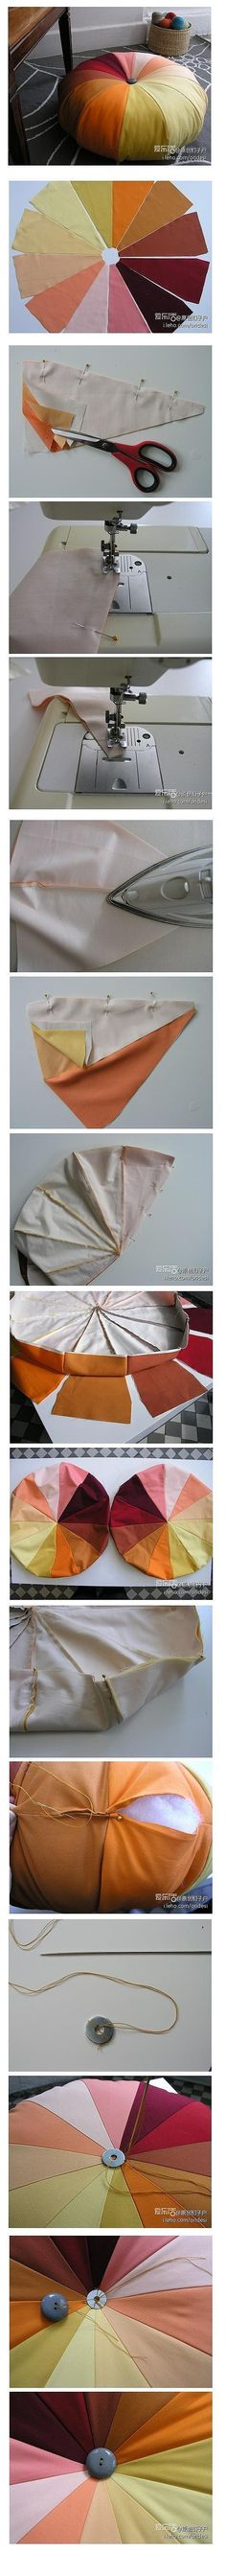 The handmade DIY old material transformation of waste utilization, to do a colorful pumpkin cushion ...